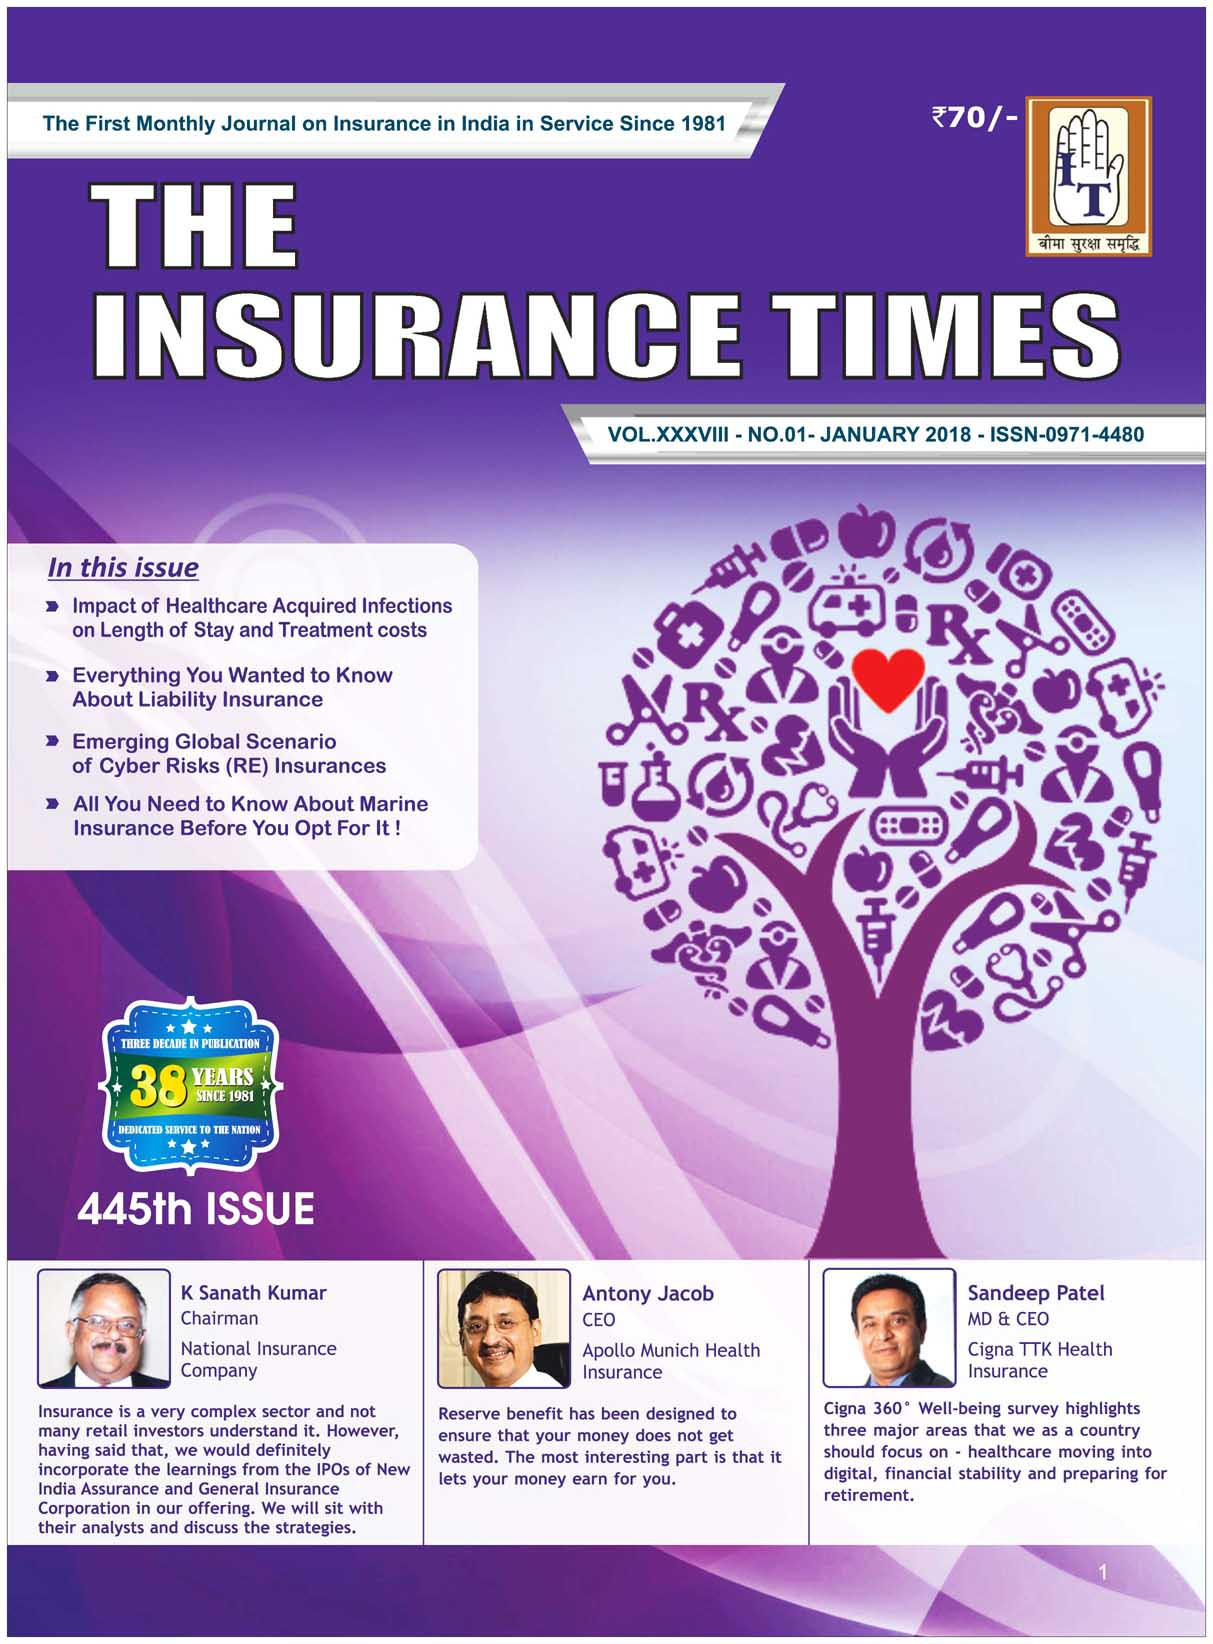 The Insurance Times January 2018